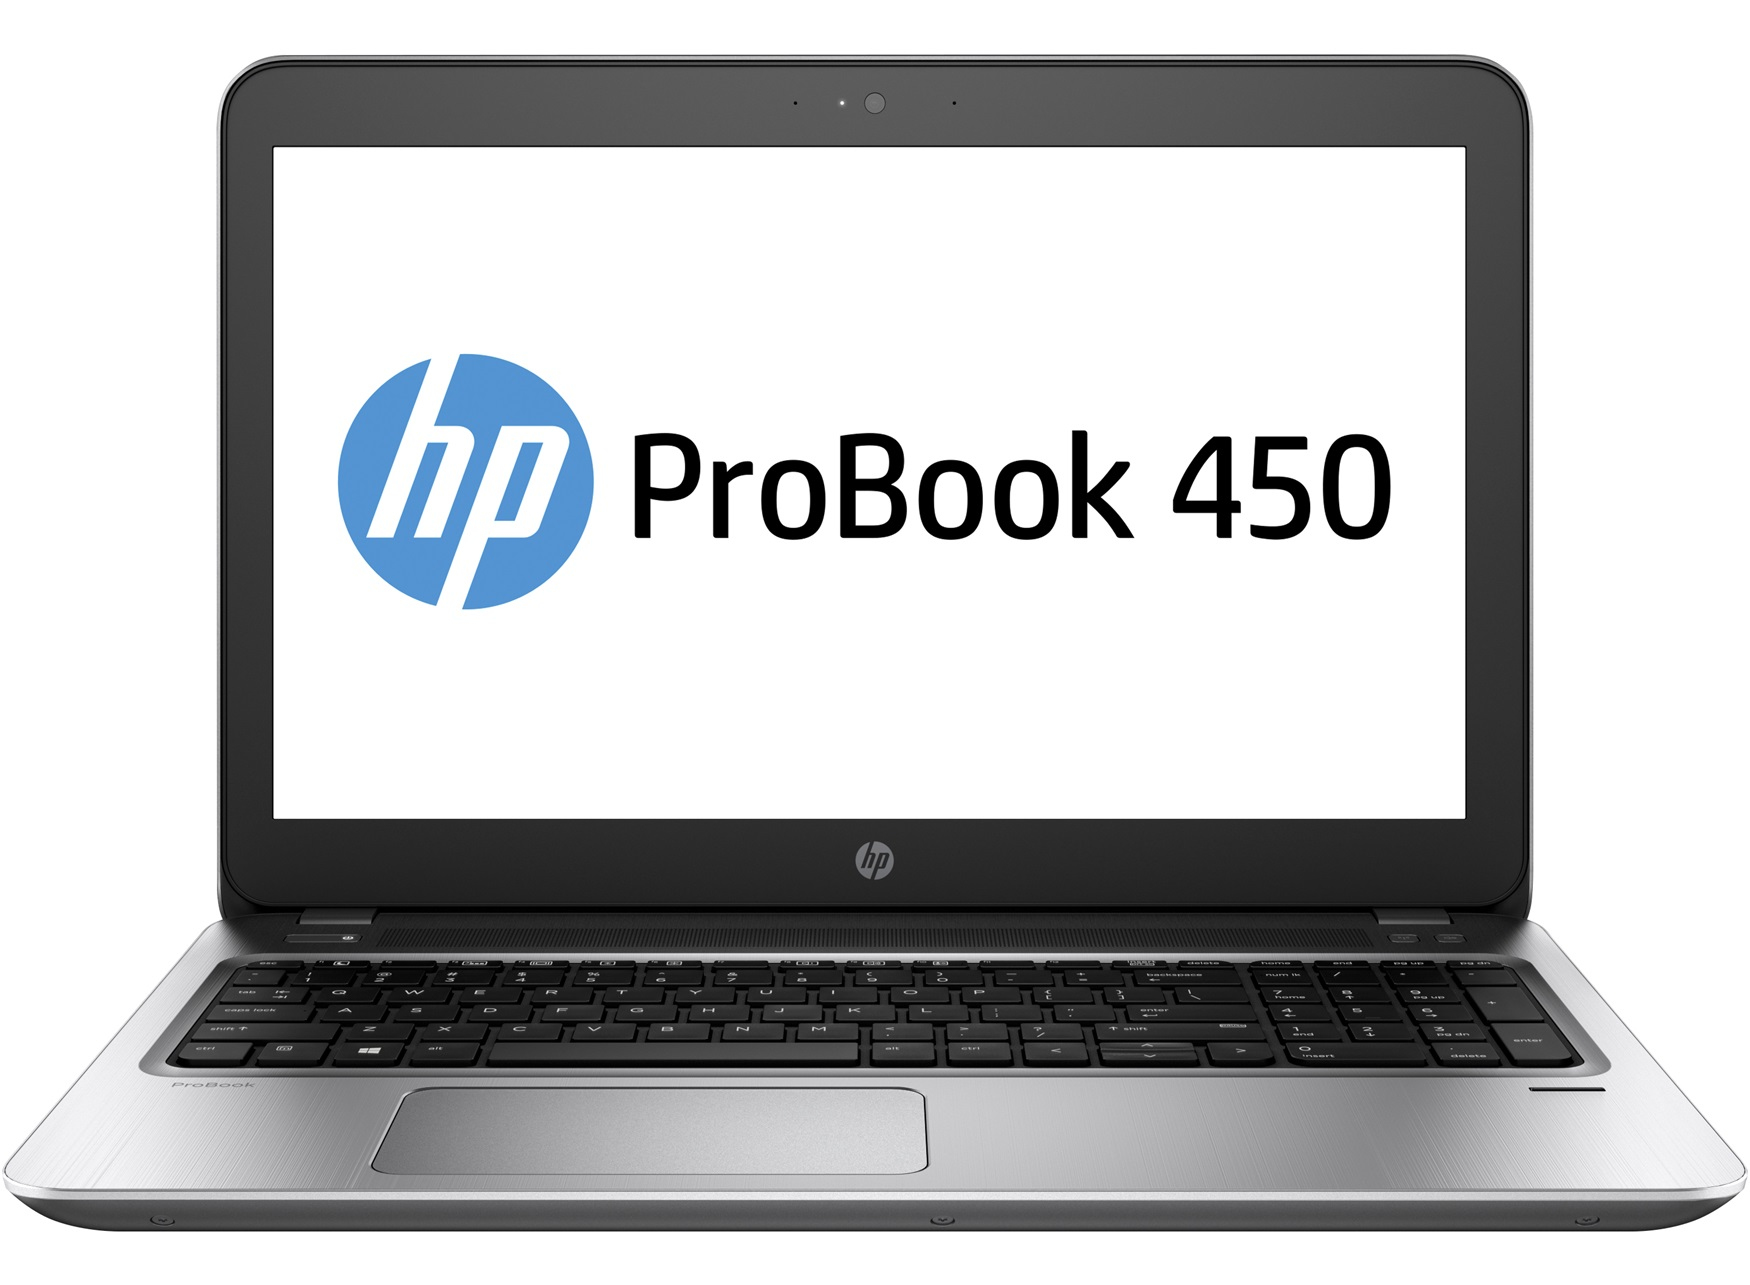 "HP ProBook 450 G4 + Elite x3 2.50GHz i5-7200U 15.6"" 1366 x 768pixels Silver Notebook"